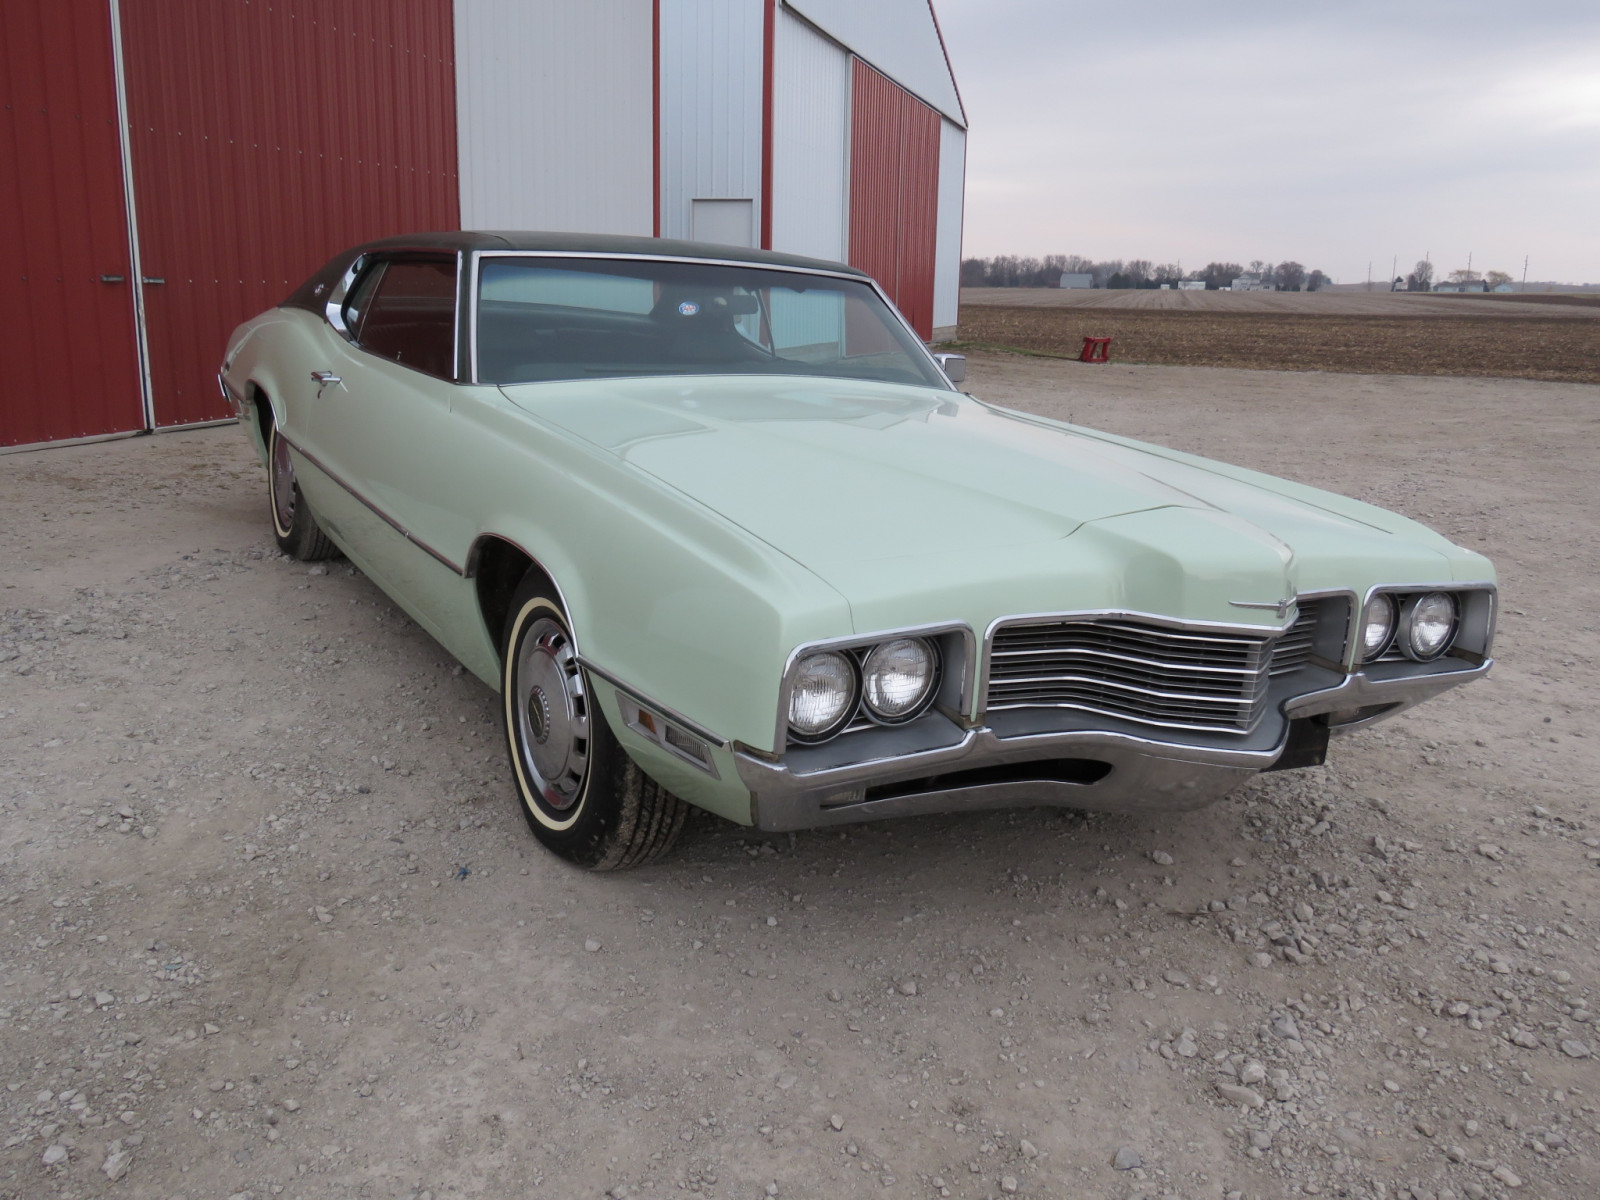 1971 Ford Thunderbird Coupe - Image 3